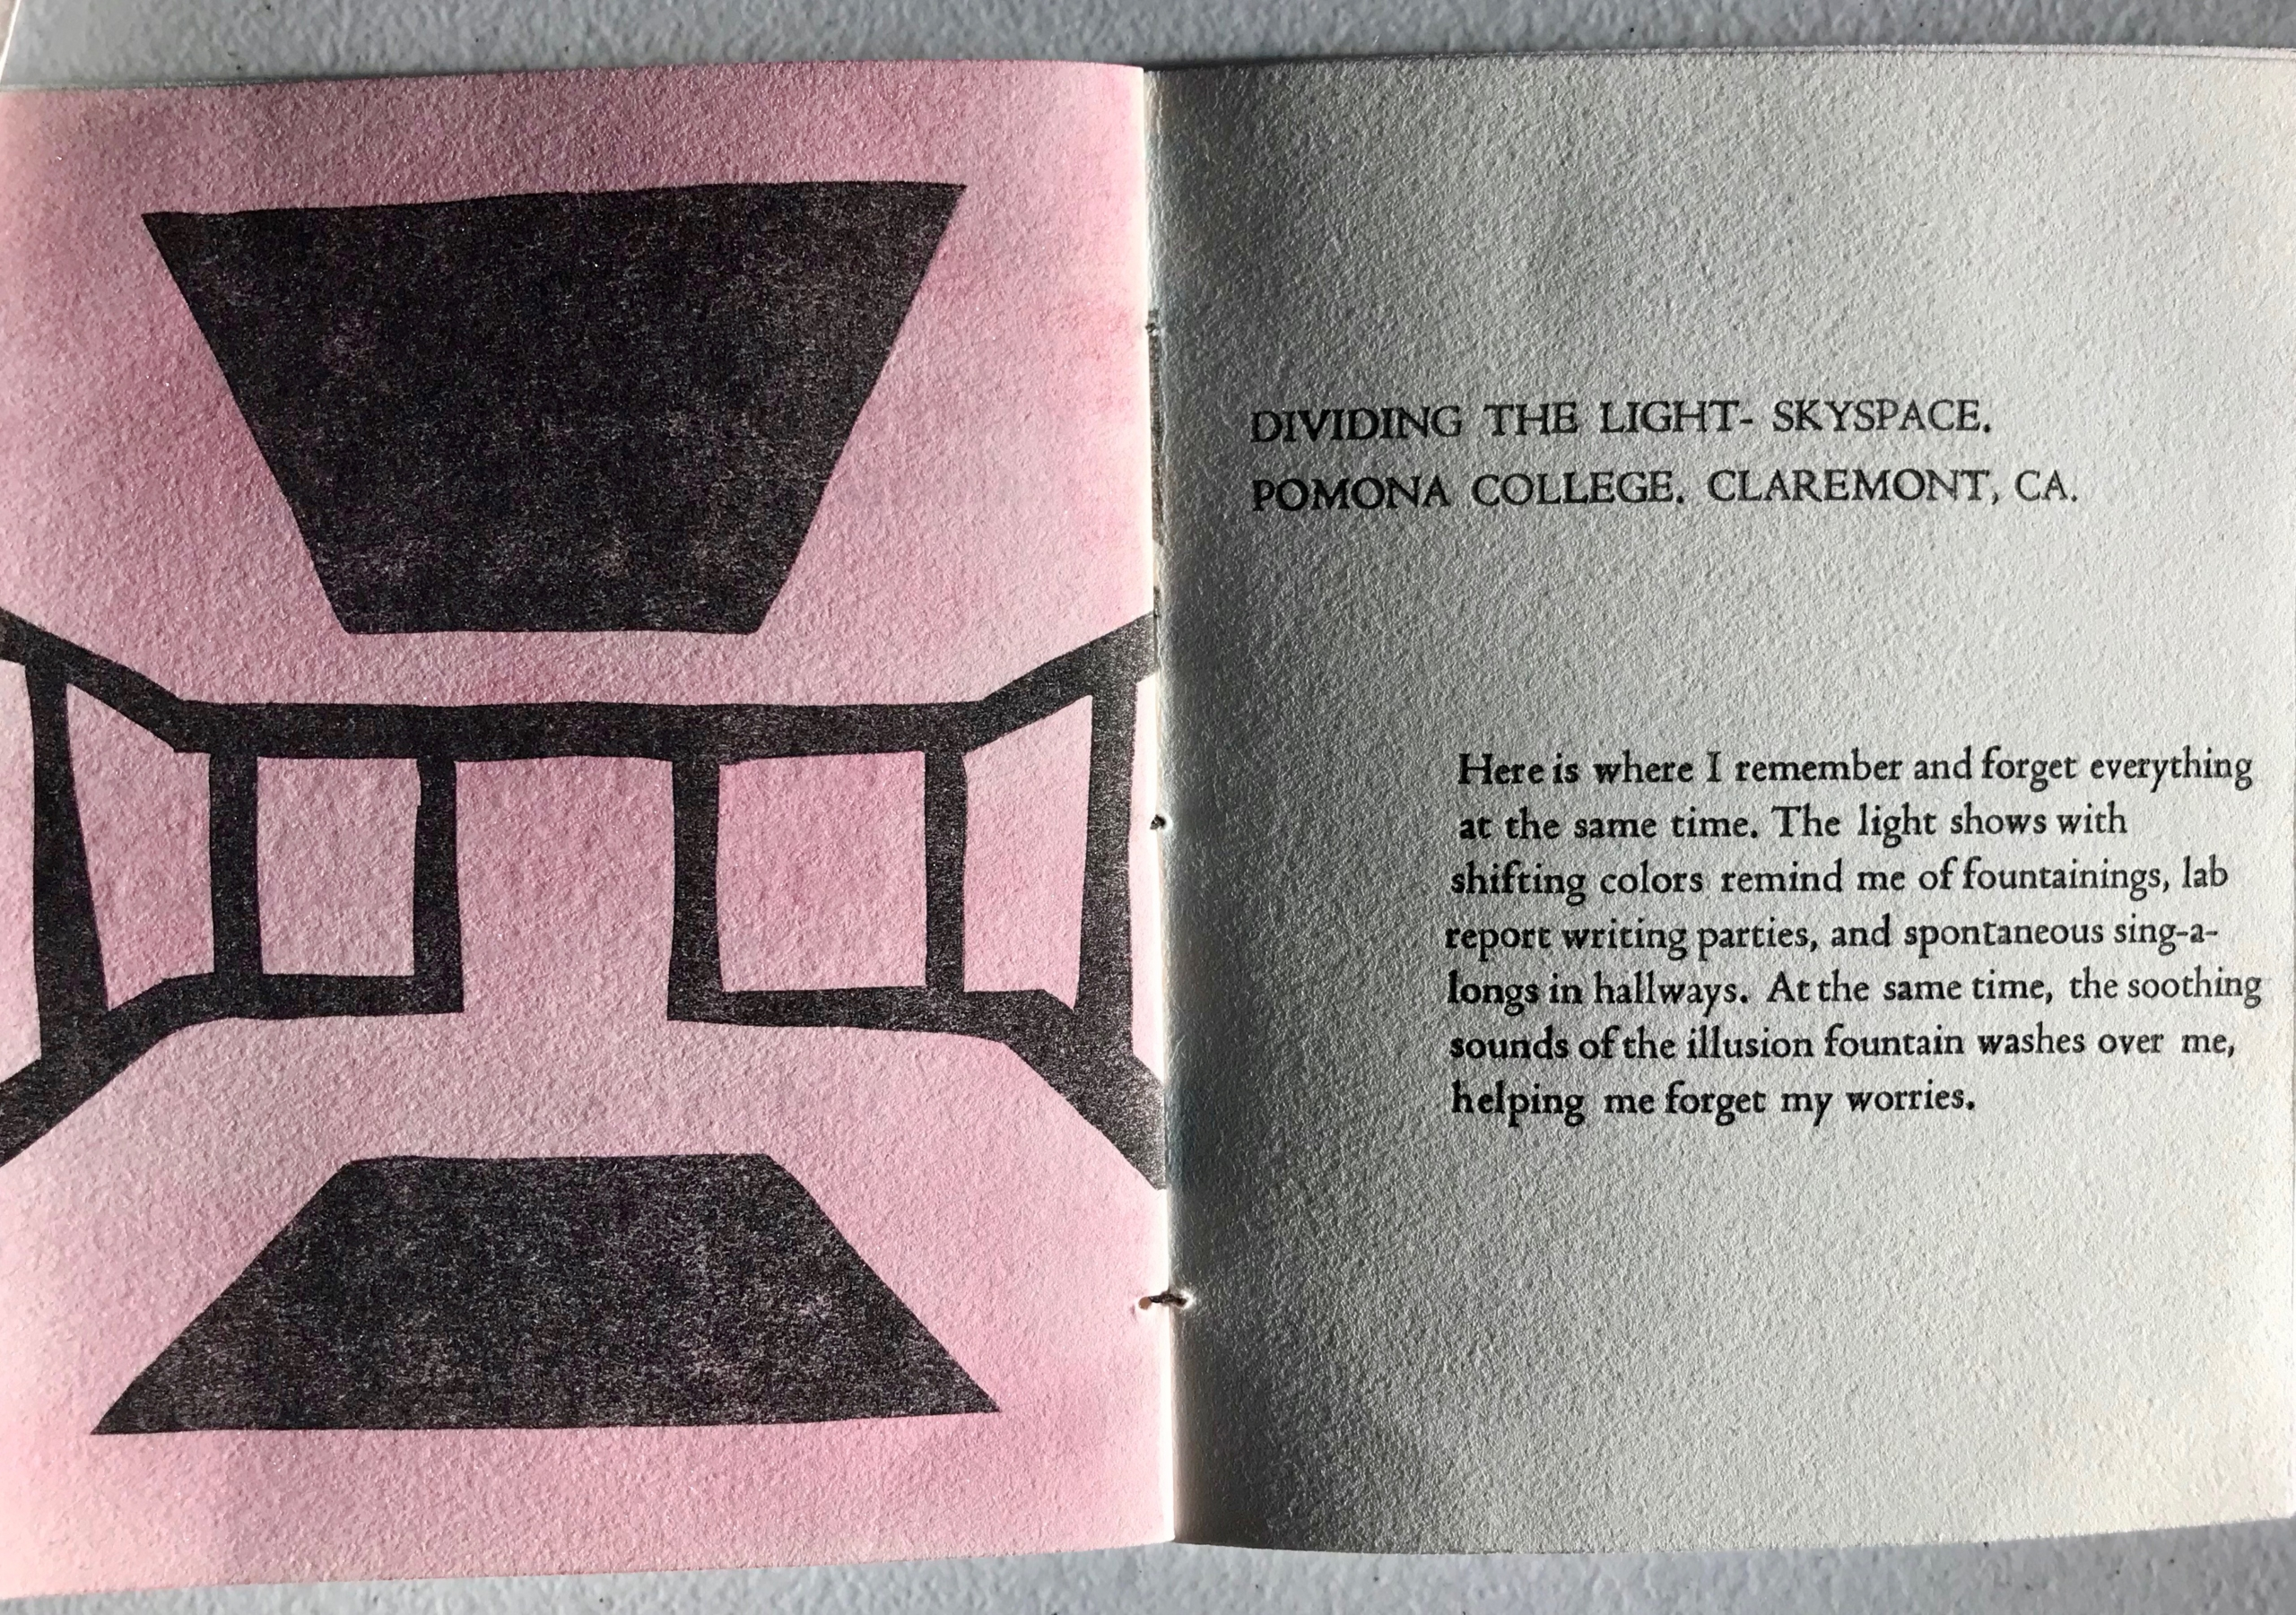 An open handcrafted book with a pink and black visual covering one page.